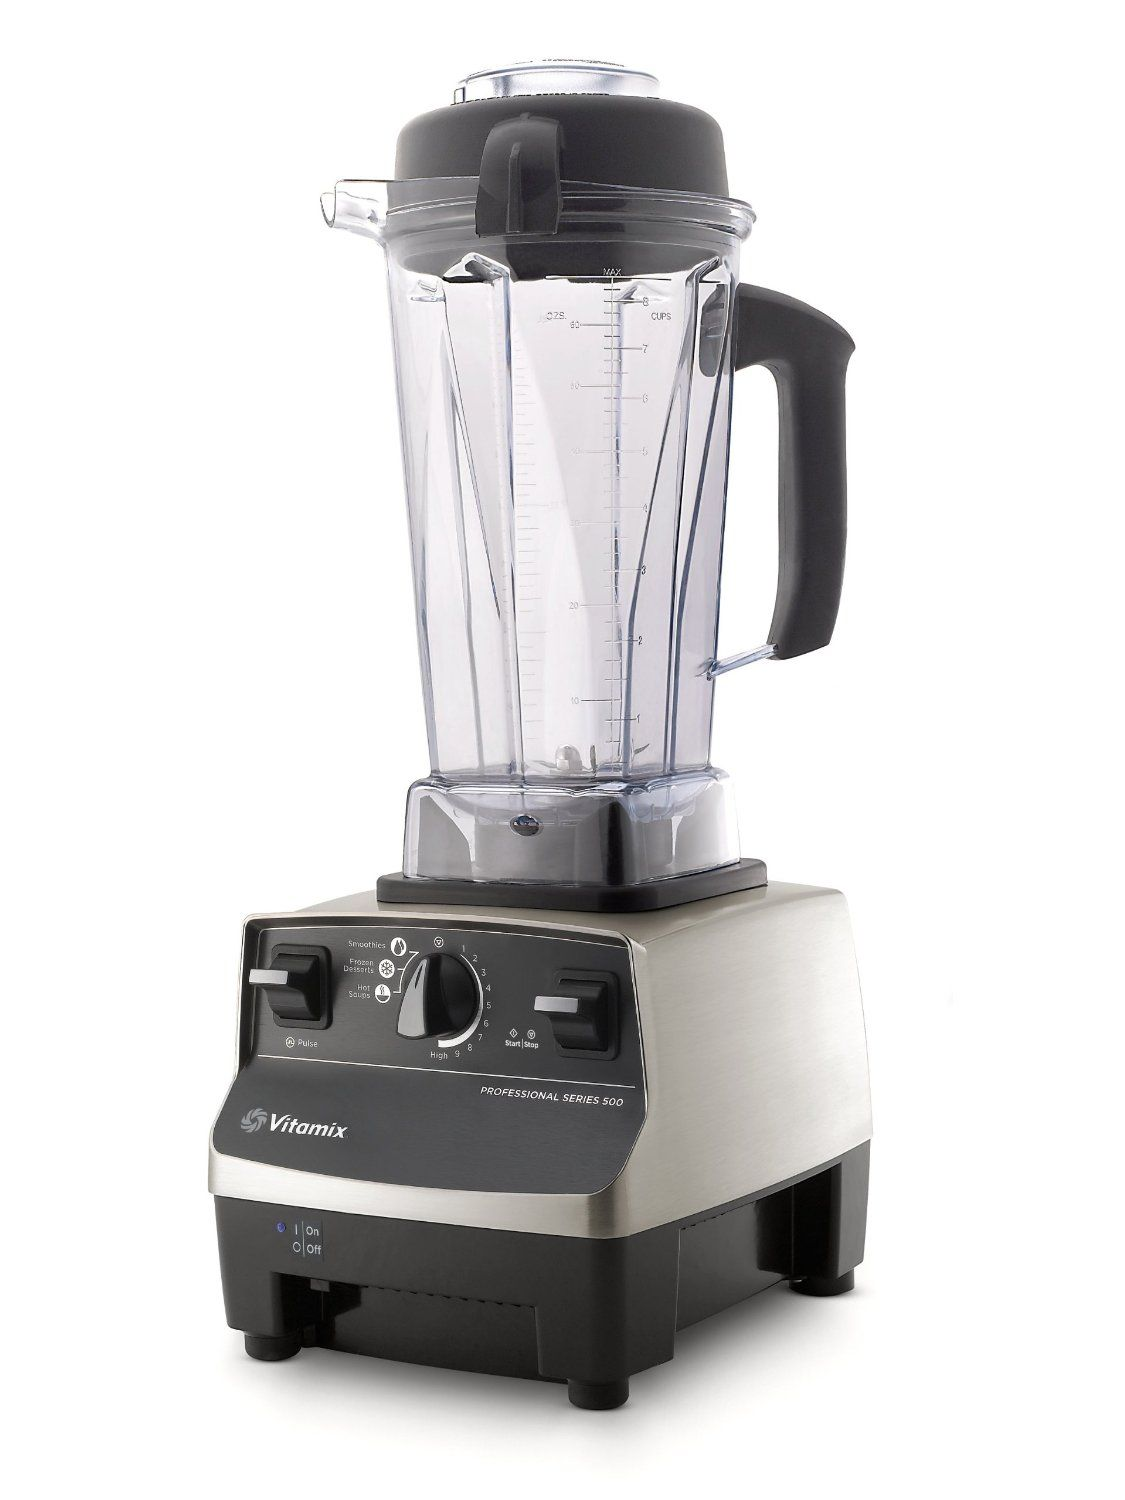 Vitamix 1710 Professional Series 500 Blender is a specially built ...